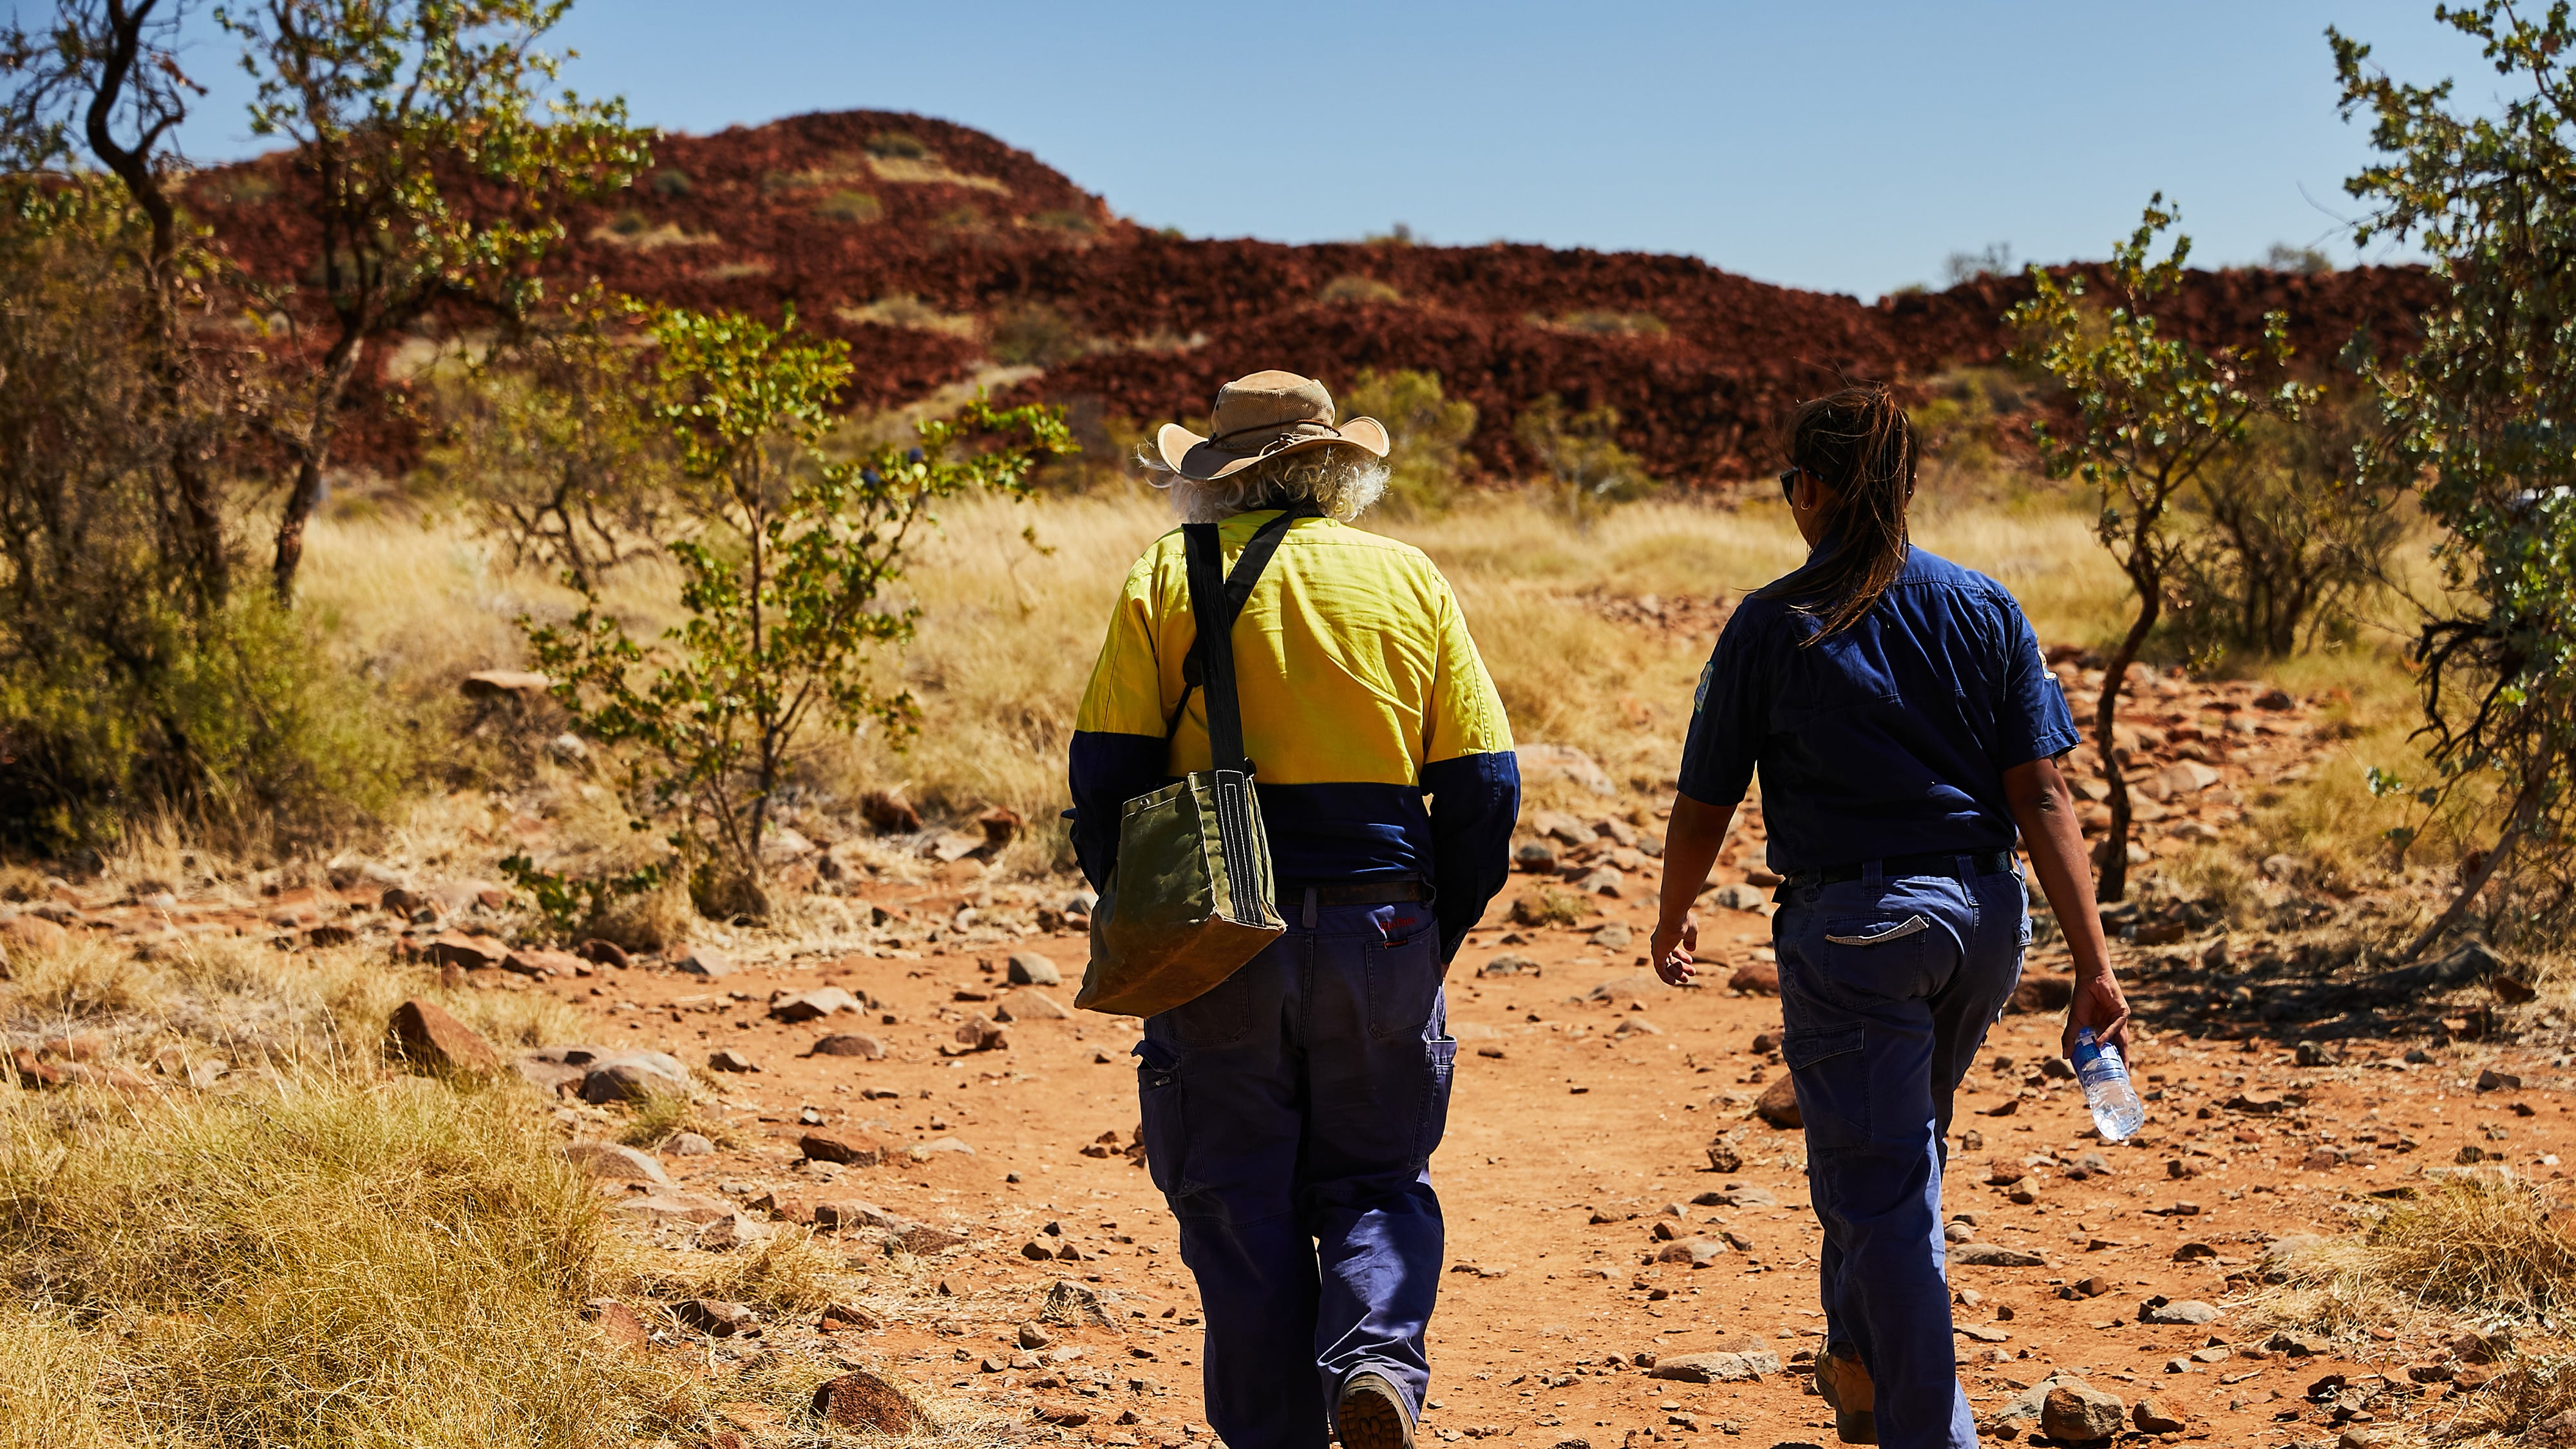 Cultural heritage in the Pilbara